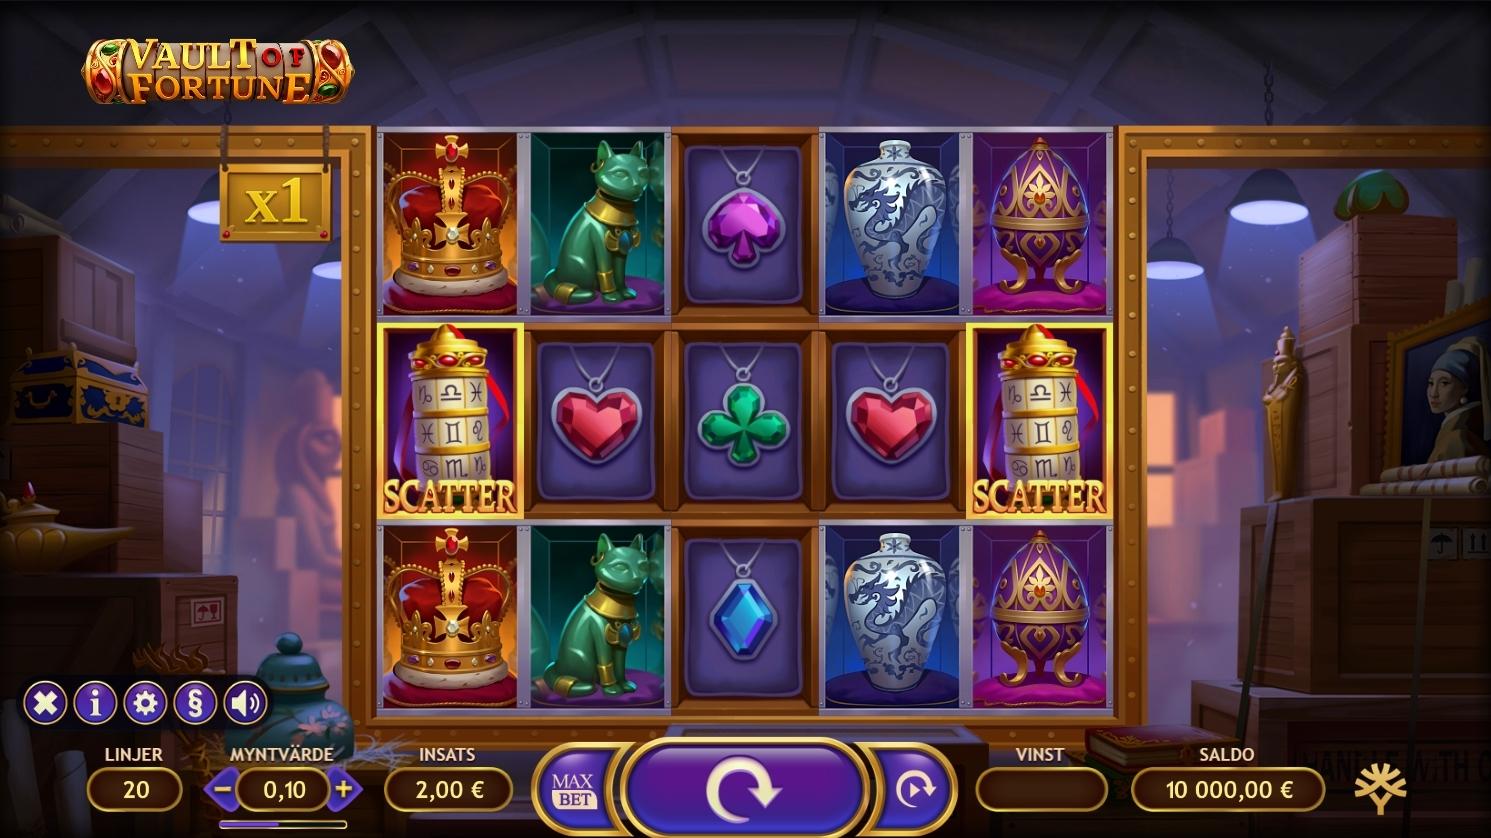 vault-of-fortune-slot